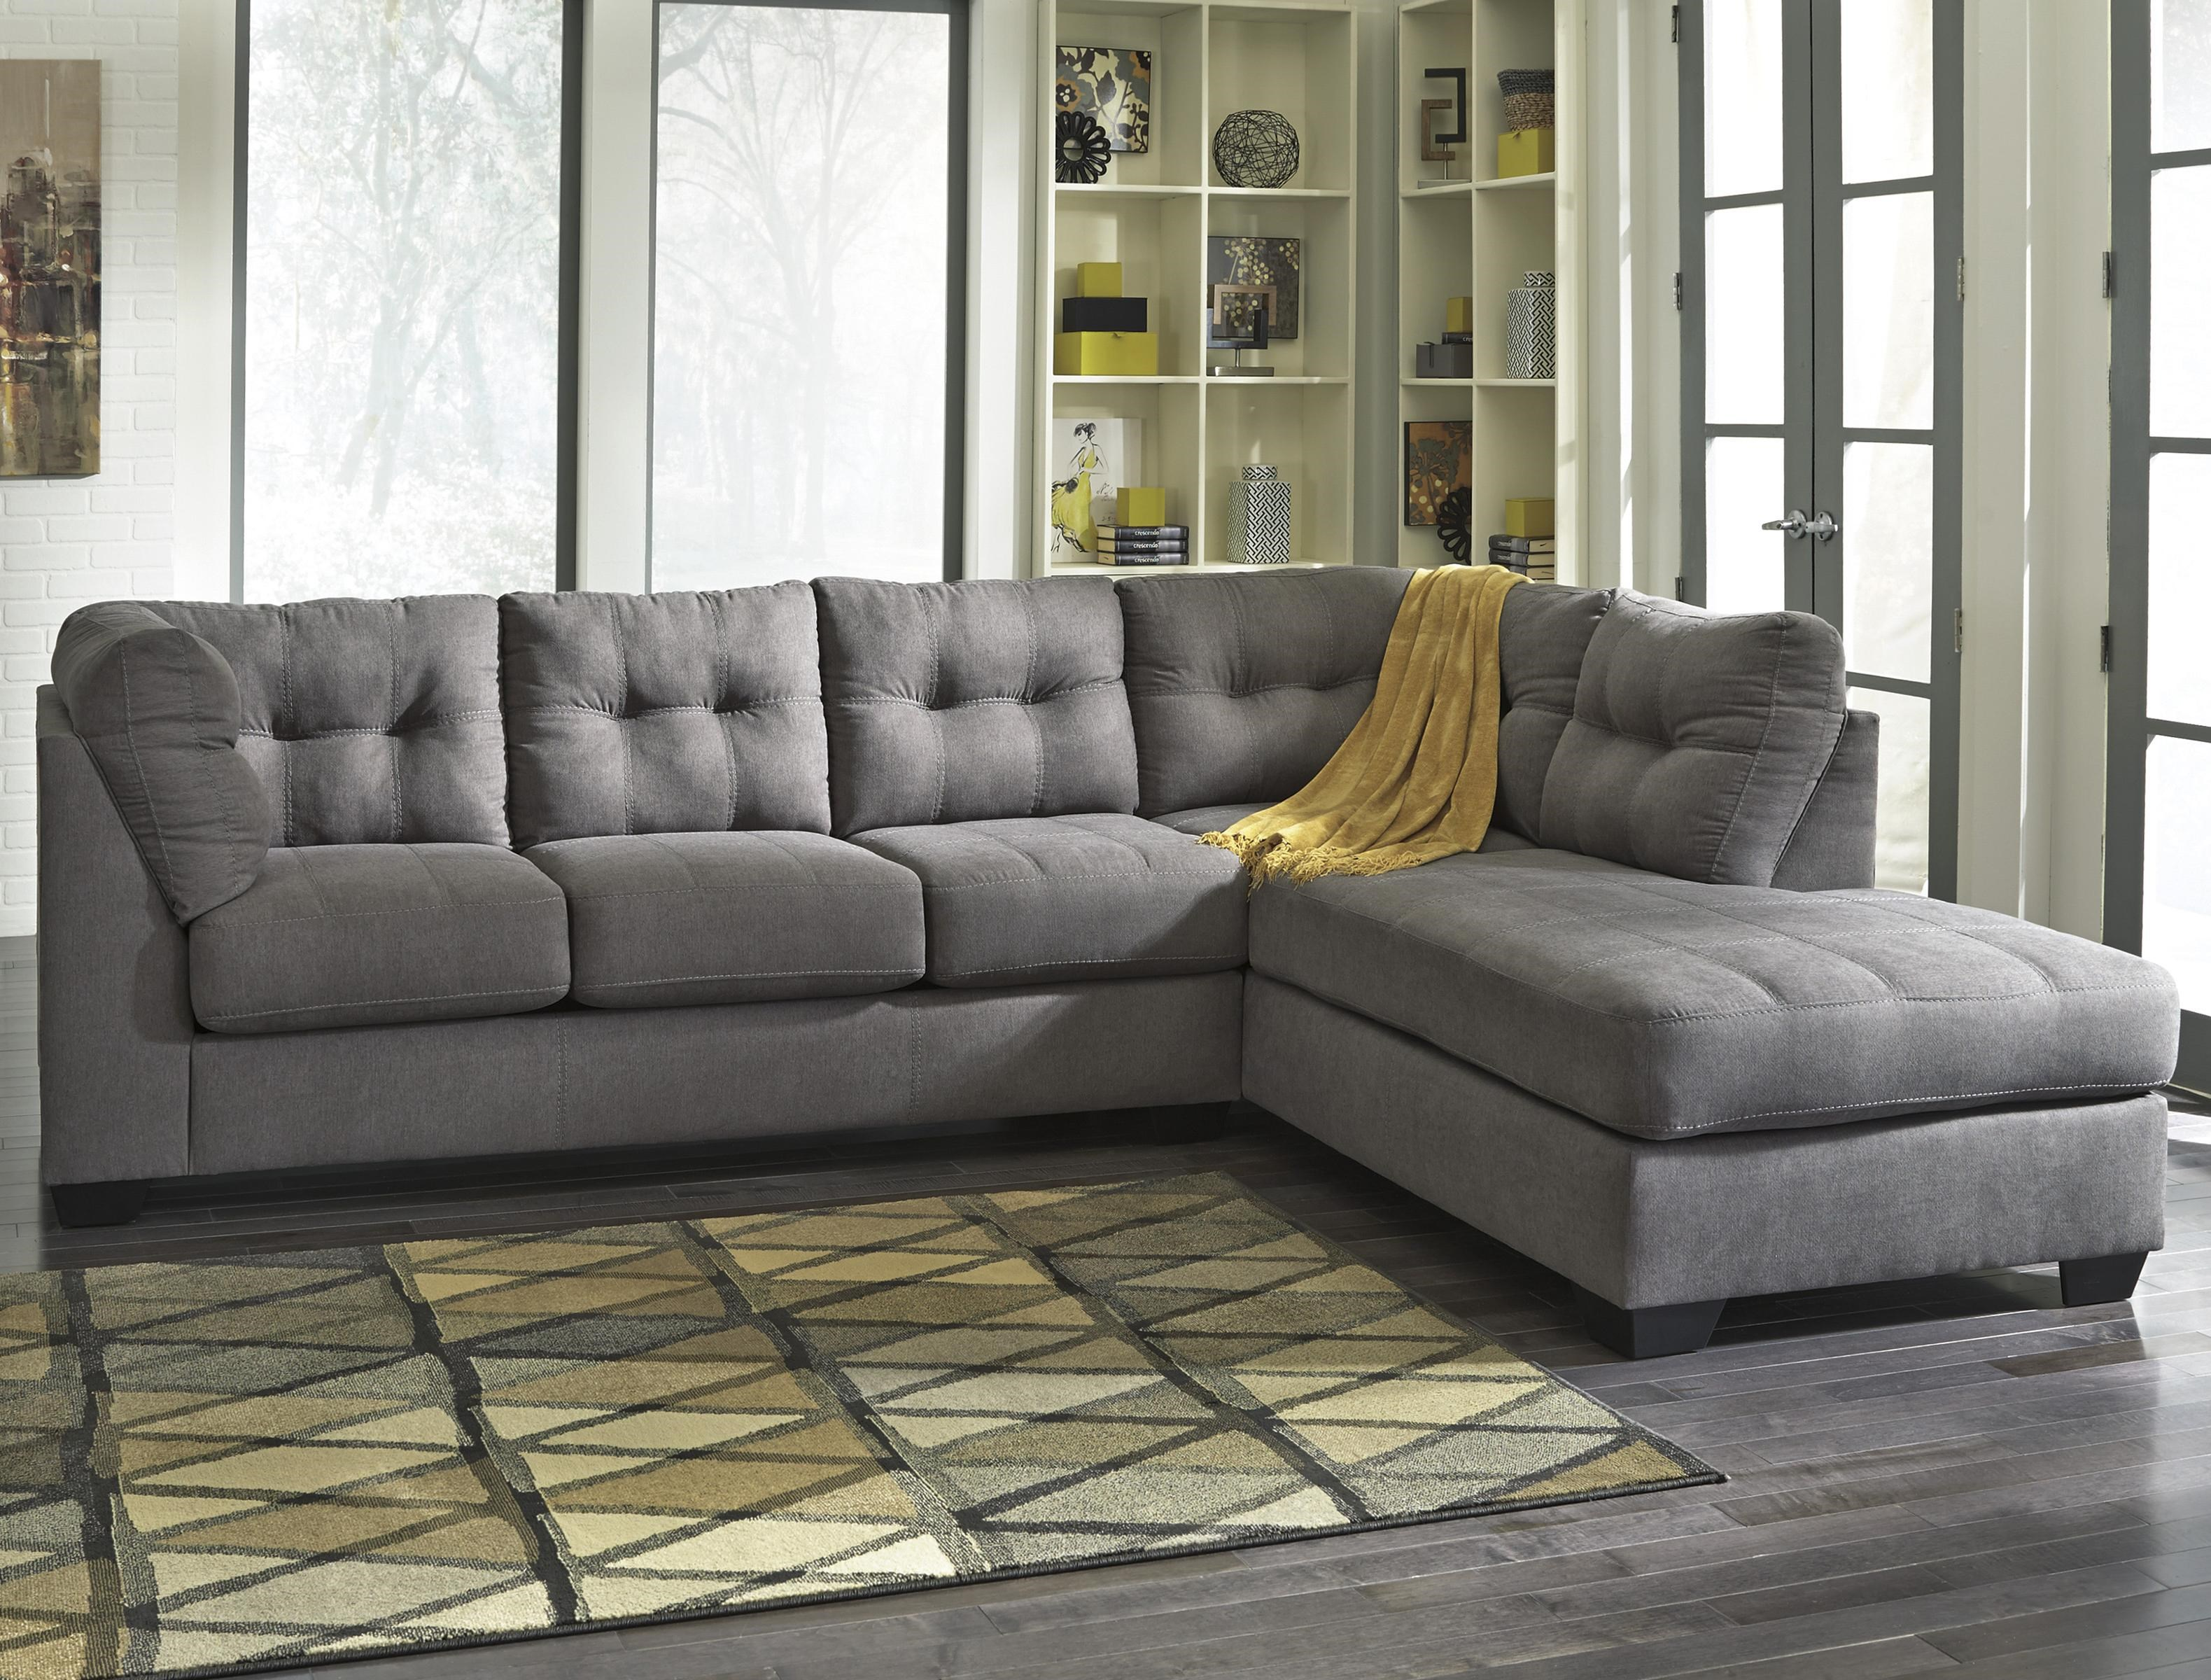 Benchcraft Maier - Charcoal 2-Piece Sectional w/ Sleeper Sofa u0026 Right Chaise  sc 1 st  Wayside Furniture : sectional sleepers with chaise - Sectionals, Sofas & Couches